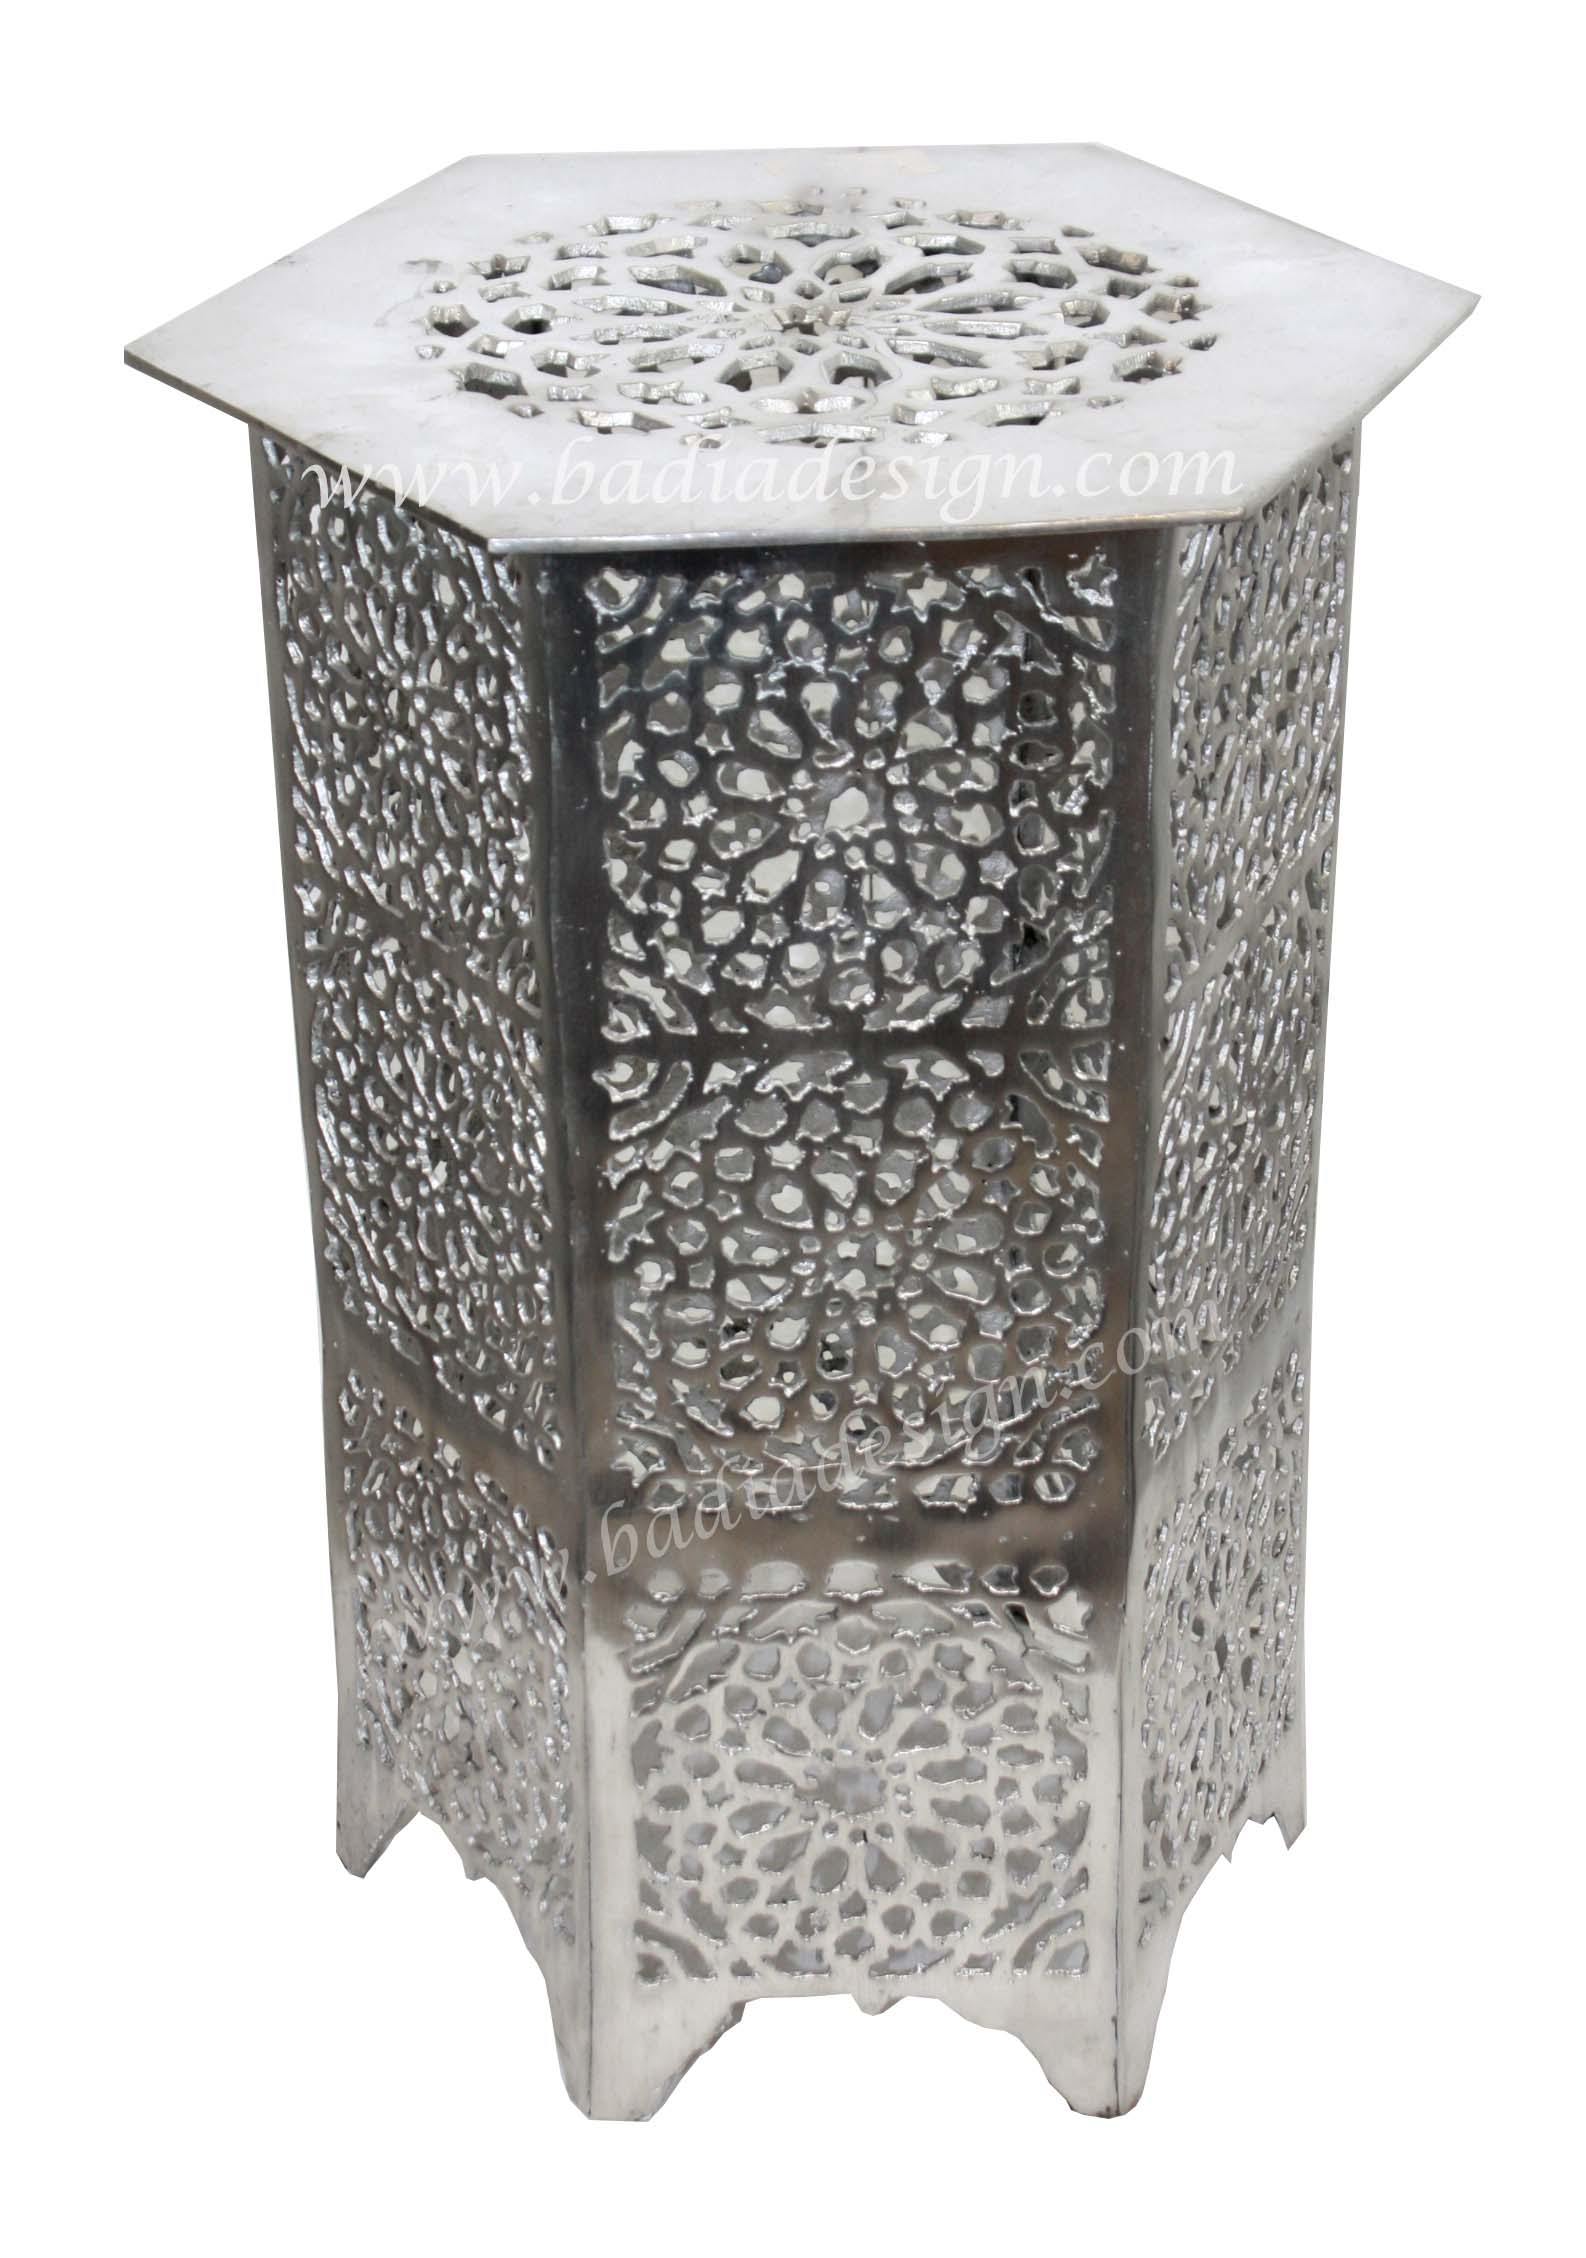 Moroccan Silver Metal Accent Table from Badia Design Inc